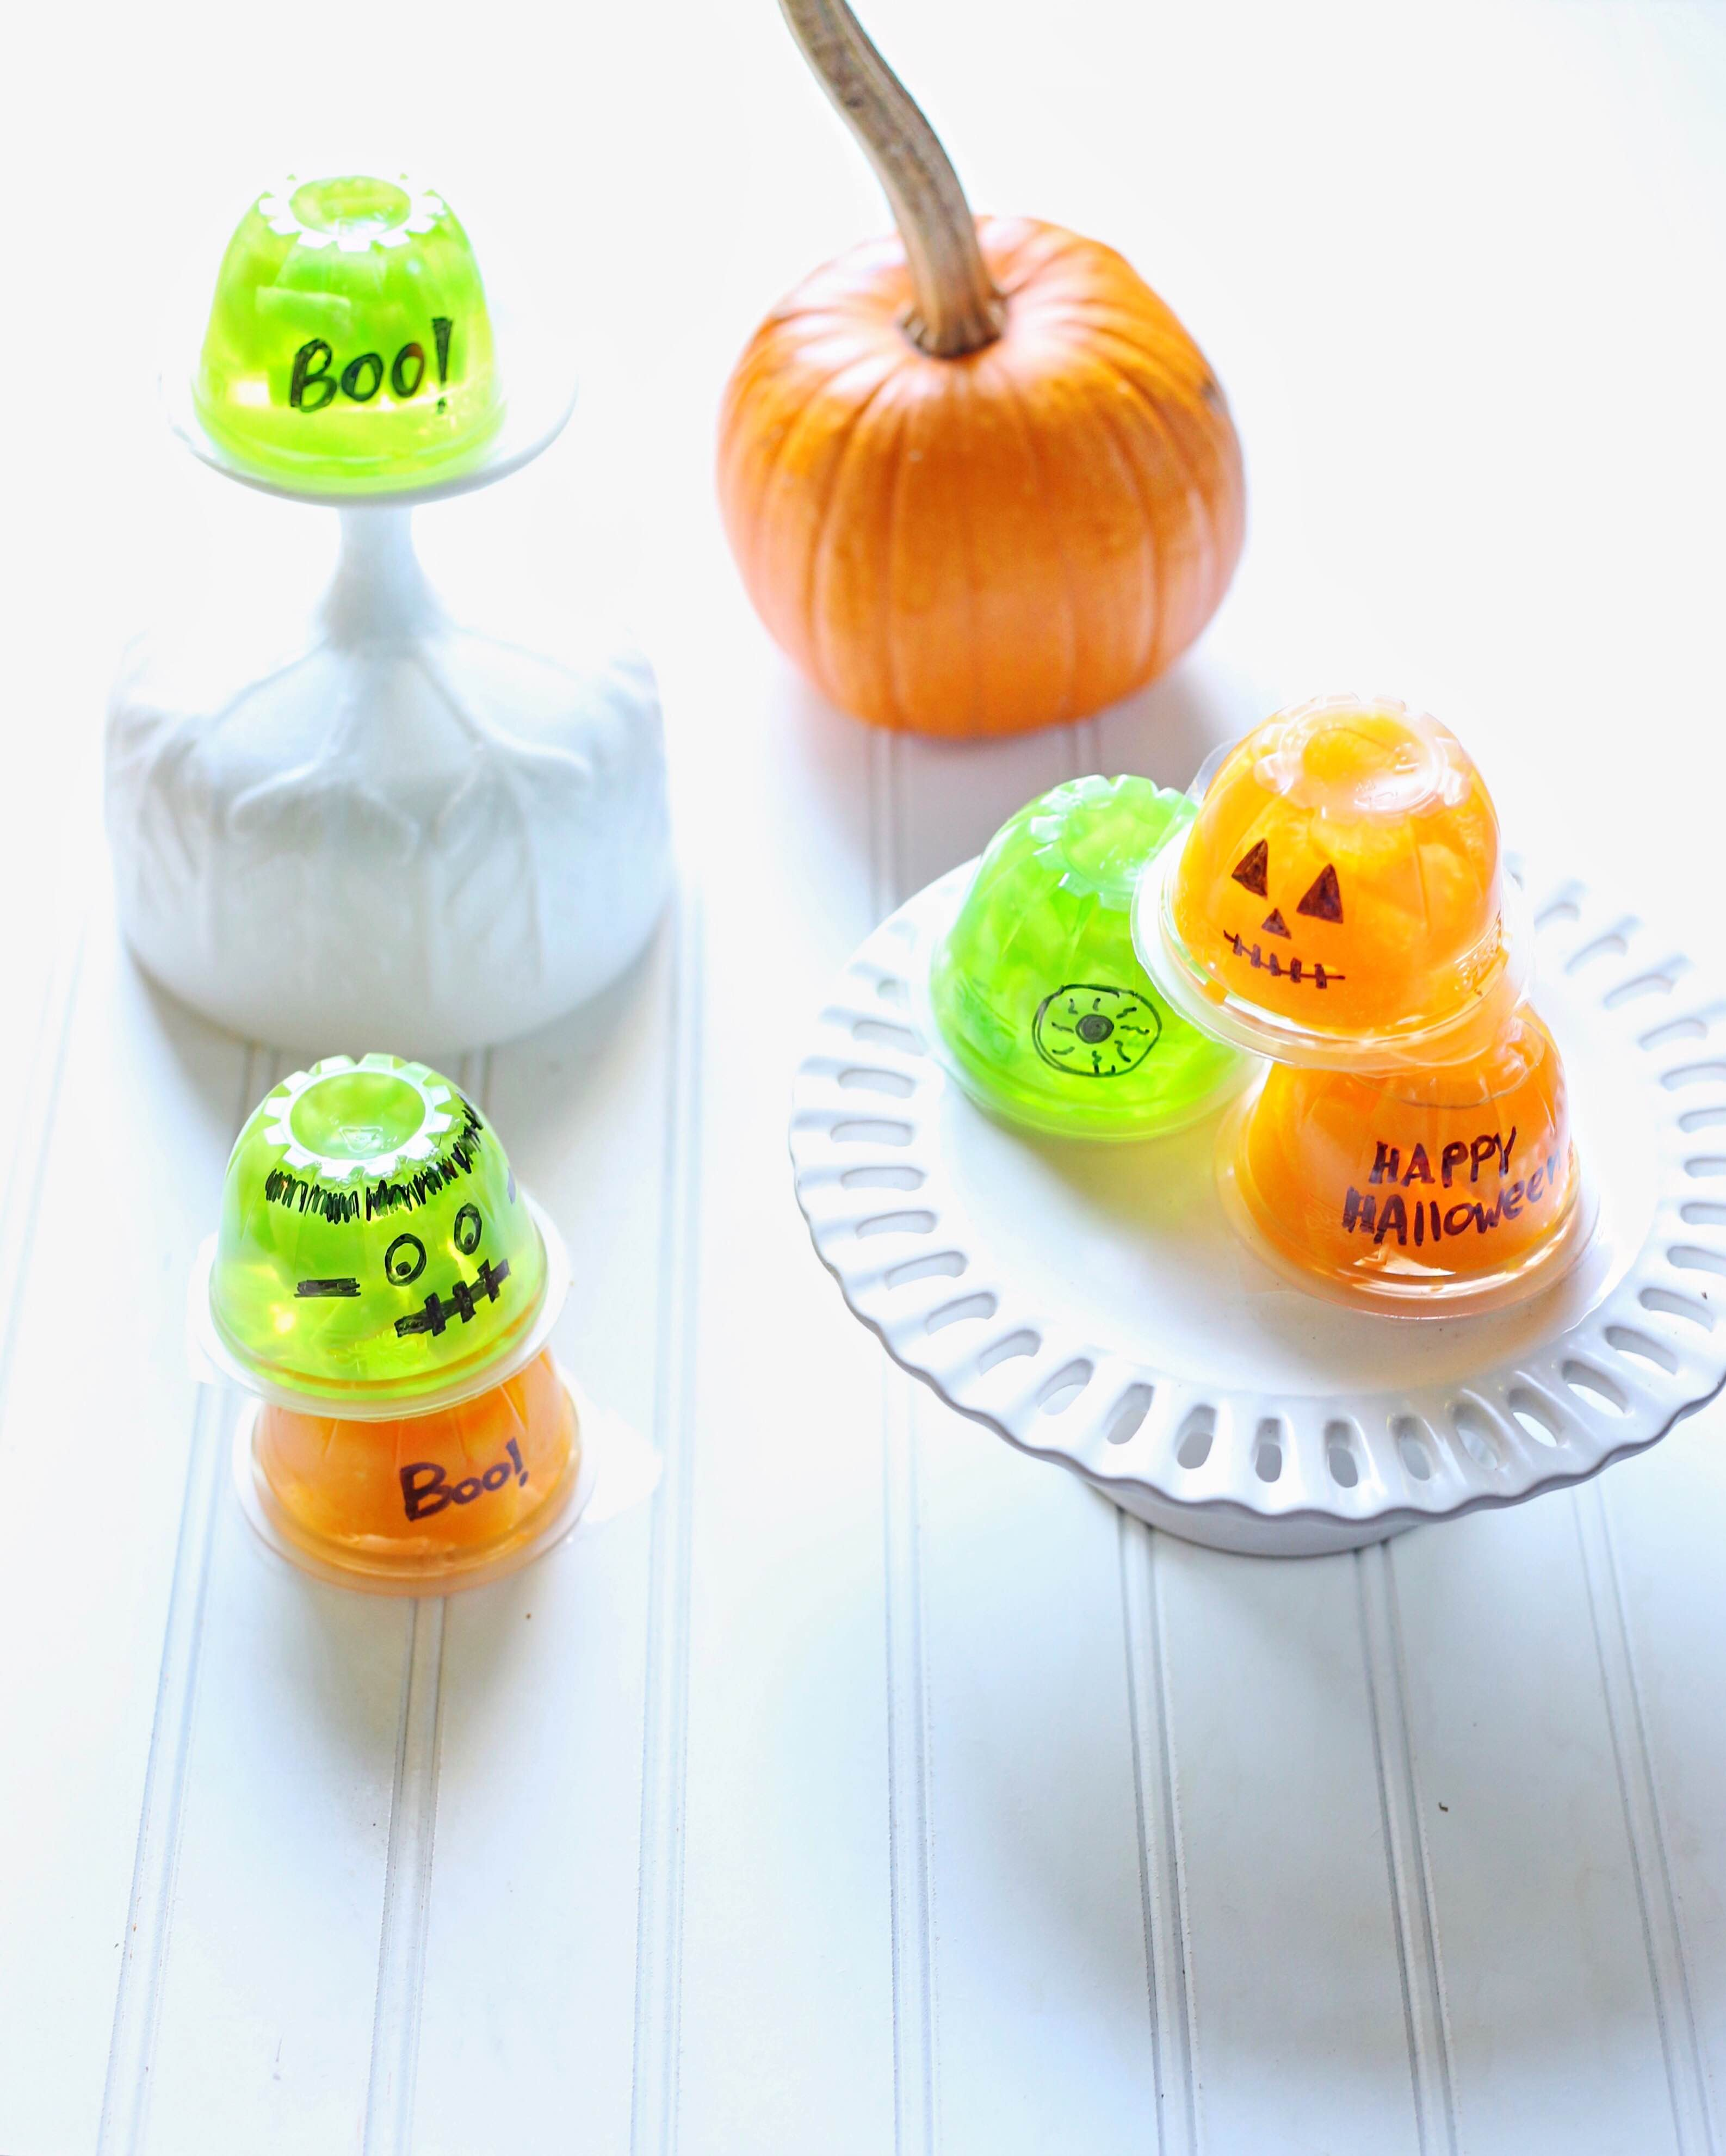 Dole Sunshine Halloween ideas